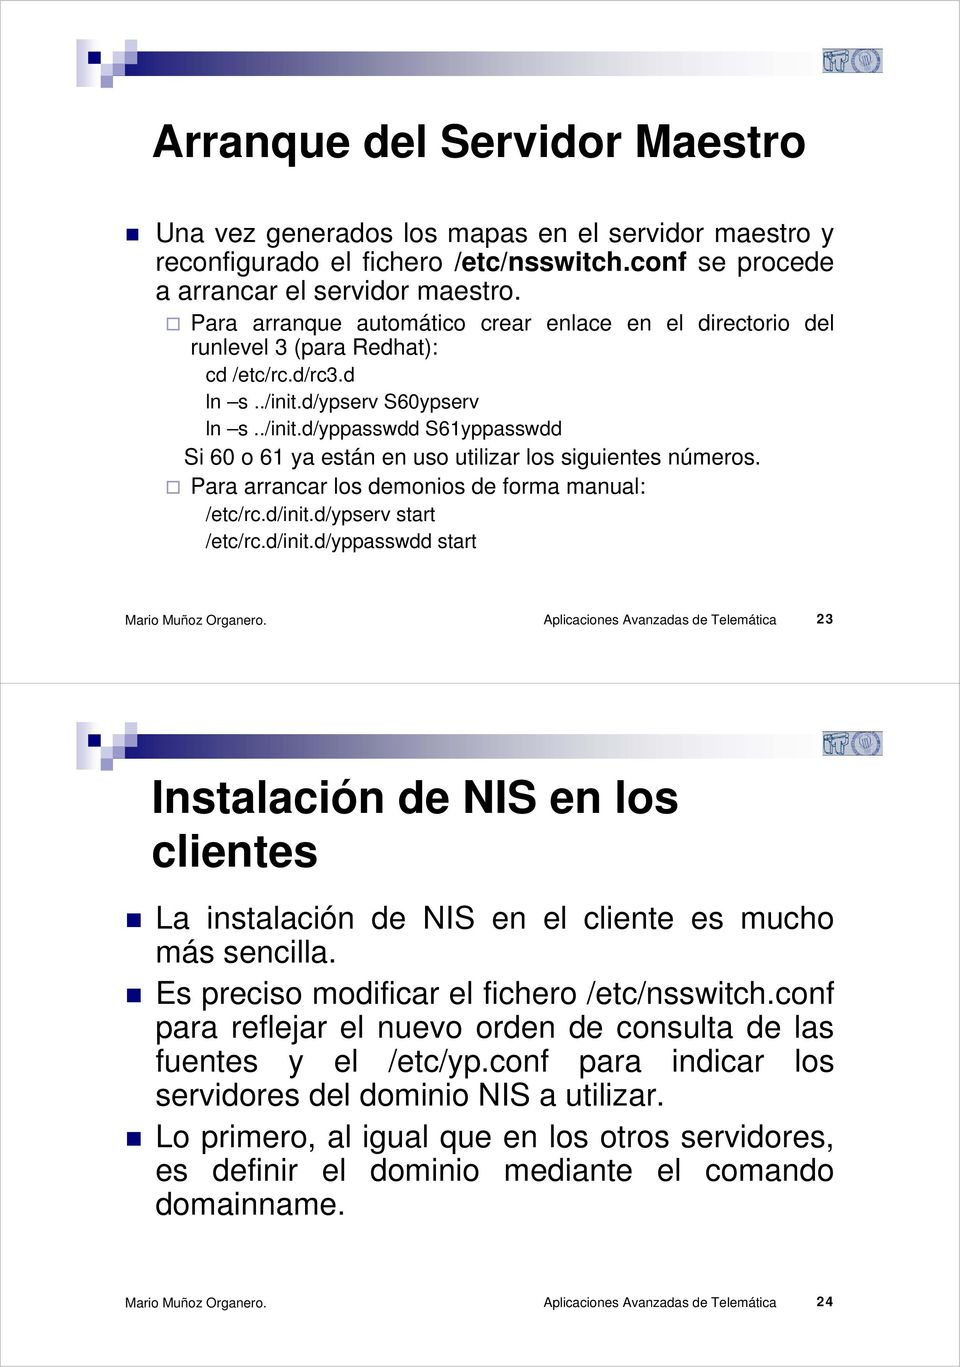 Para arrancar los demonios de forma manual: /etc/rc.d/init.